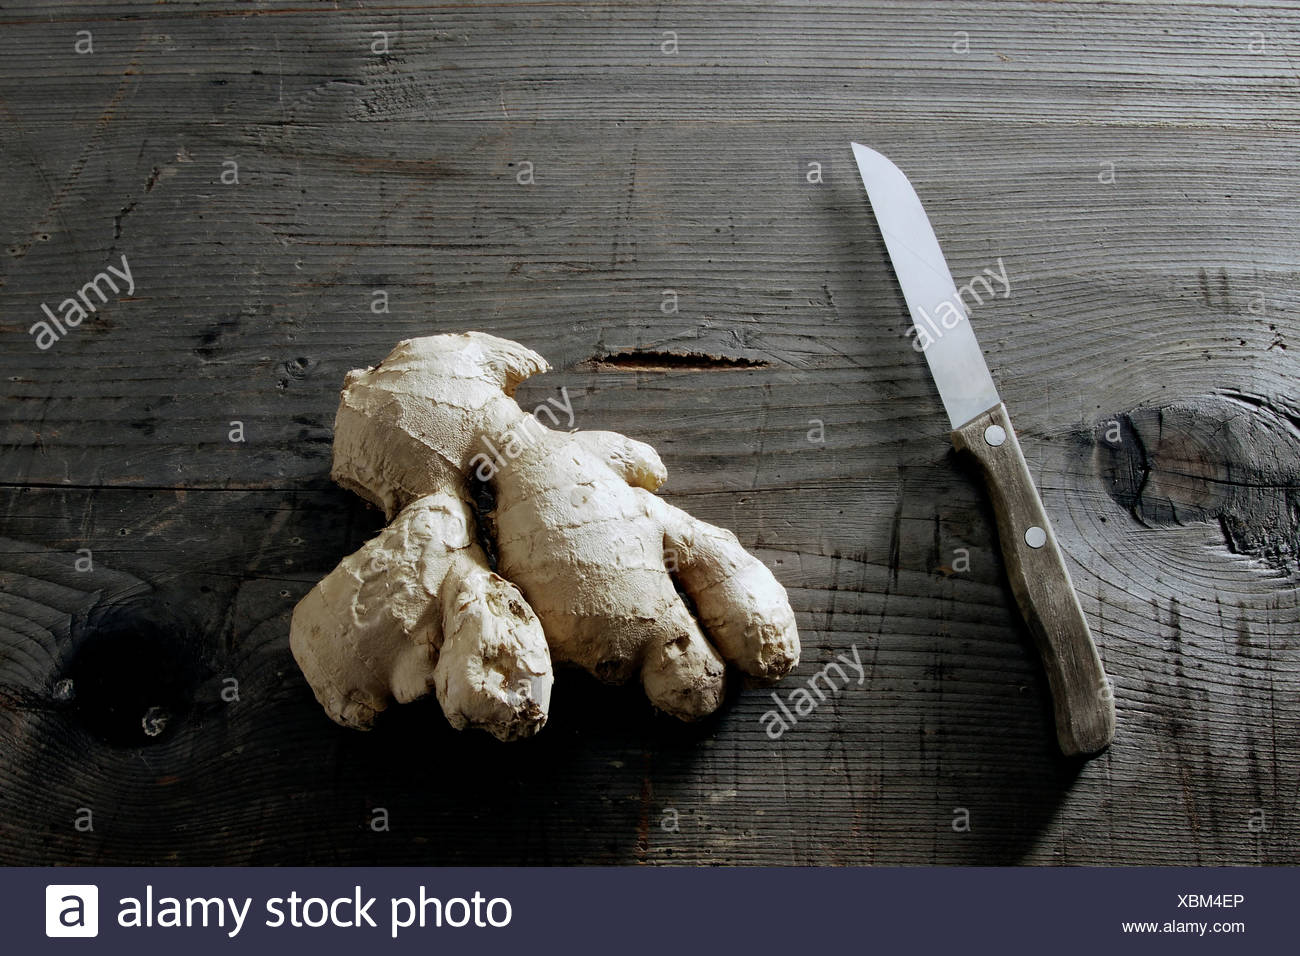 Ginger (Zingiber officinale) rhizome on a rustic wooden surface - Stock Image